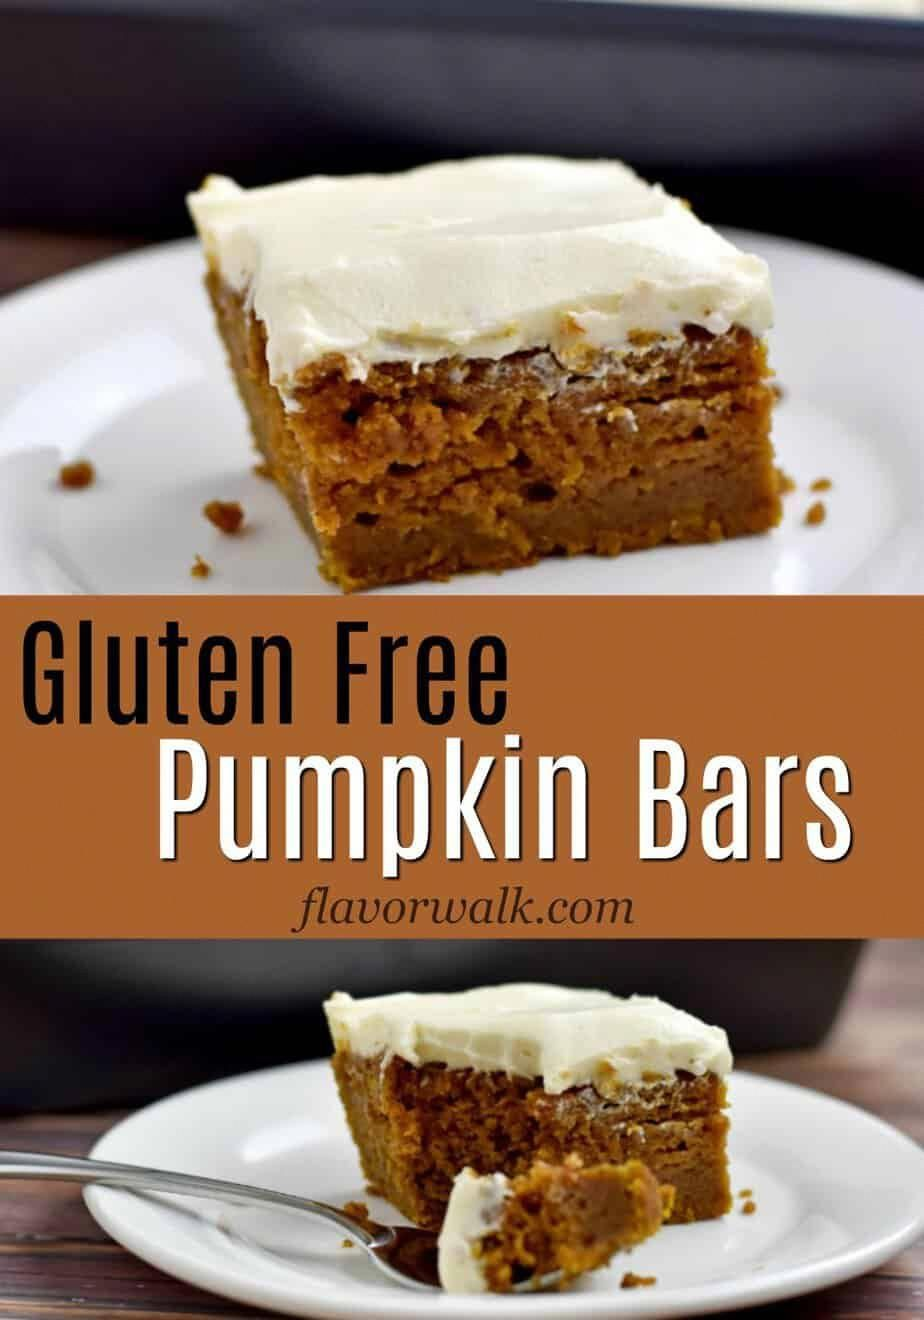 This Recipe For Gluten Free Pumpkin Bars Makes A Delicious Flavor